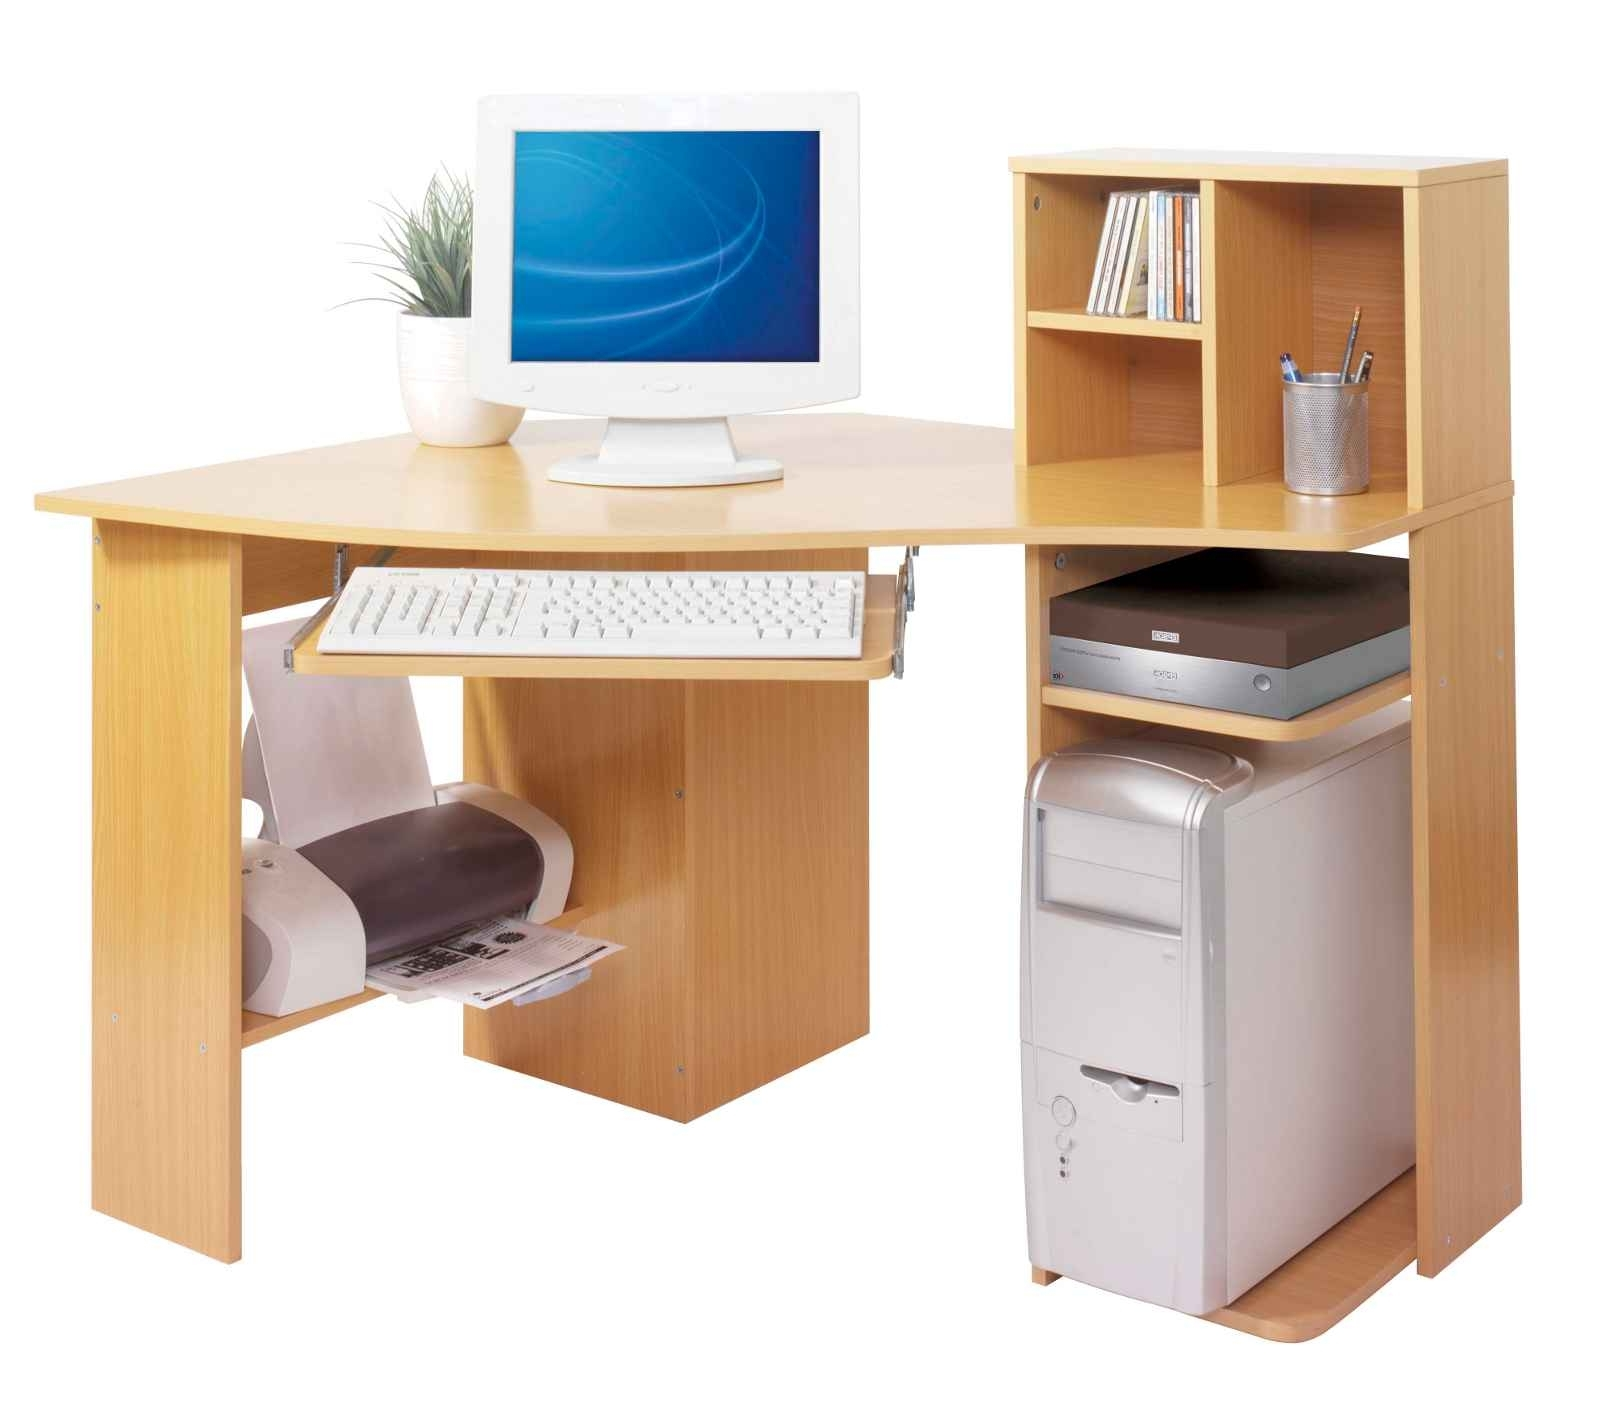 Quality Computer Desks For Preferred Remarkable Quality Computer Desk Catchy Furniture Home Design (Gallery 11 of 20)